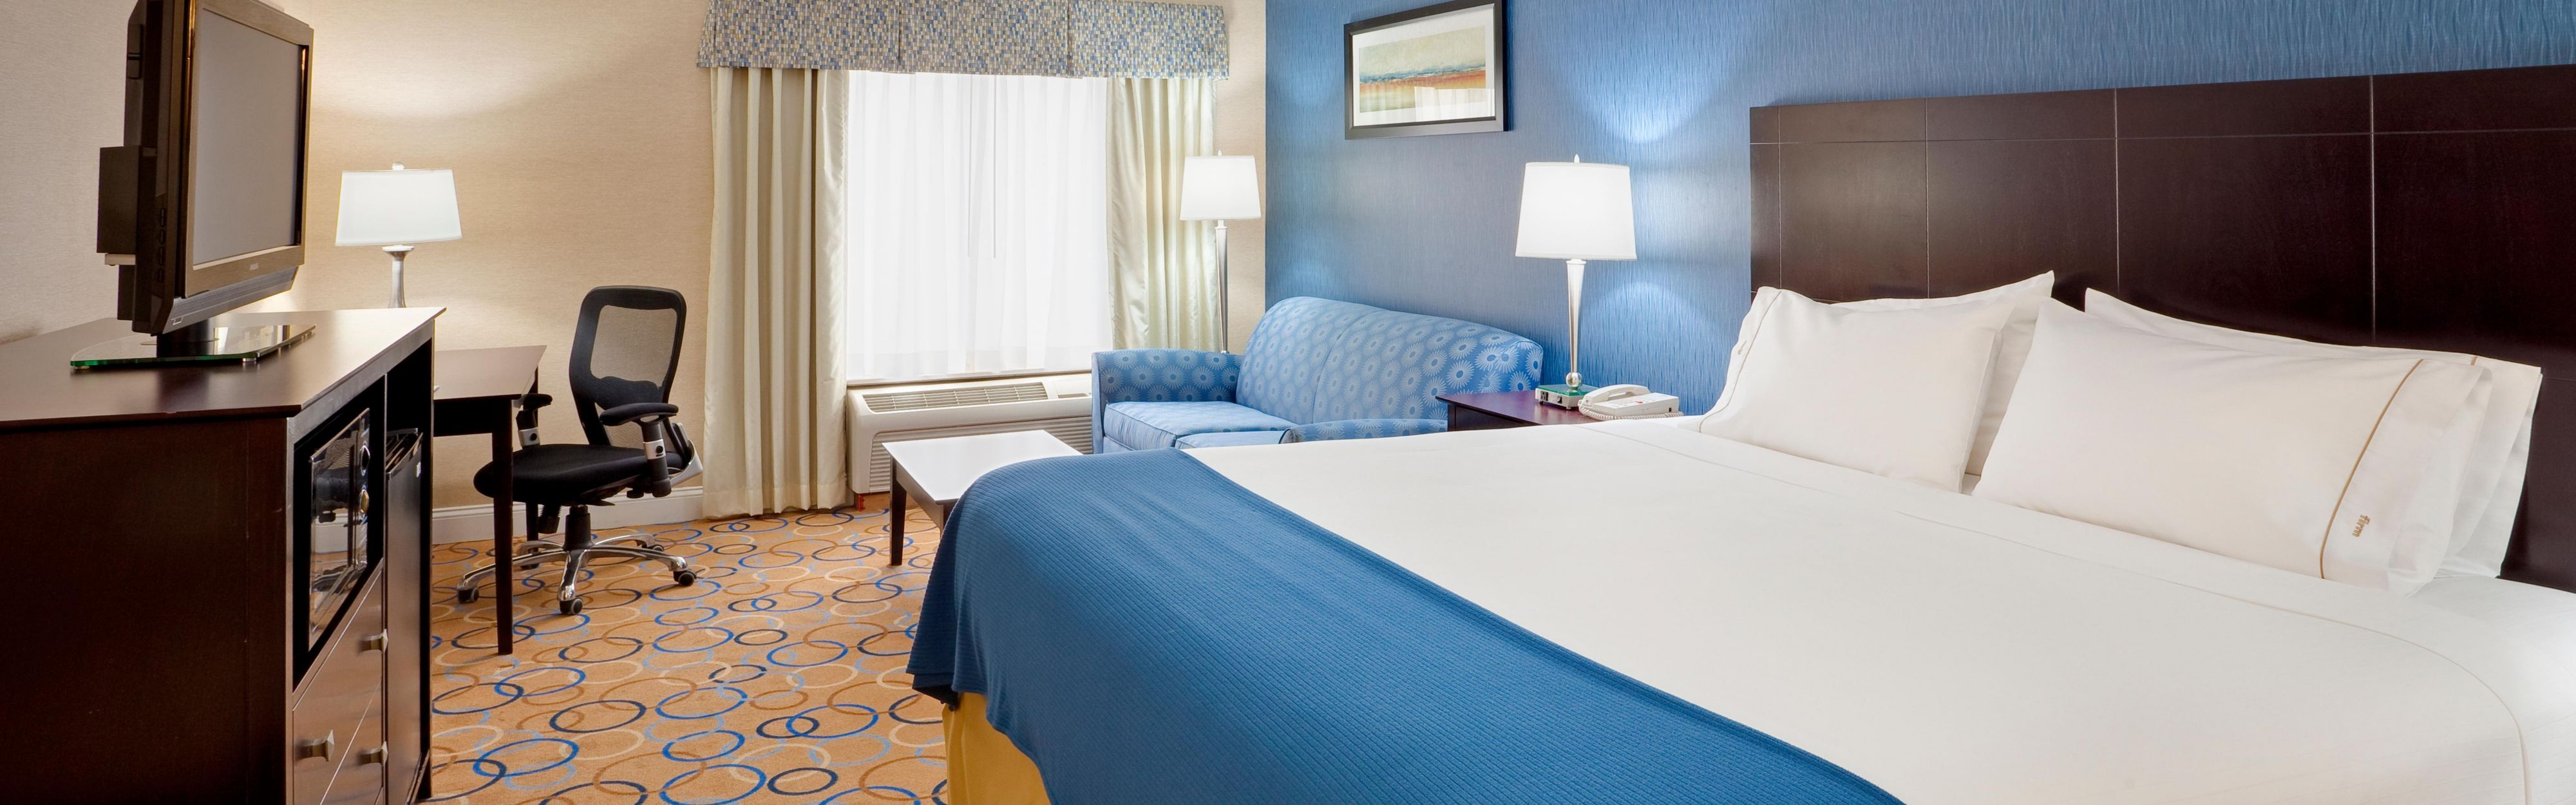 Holiday Inn Express & Suites Williamsport image 1